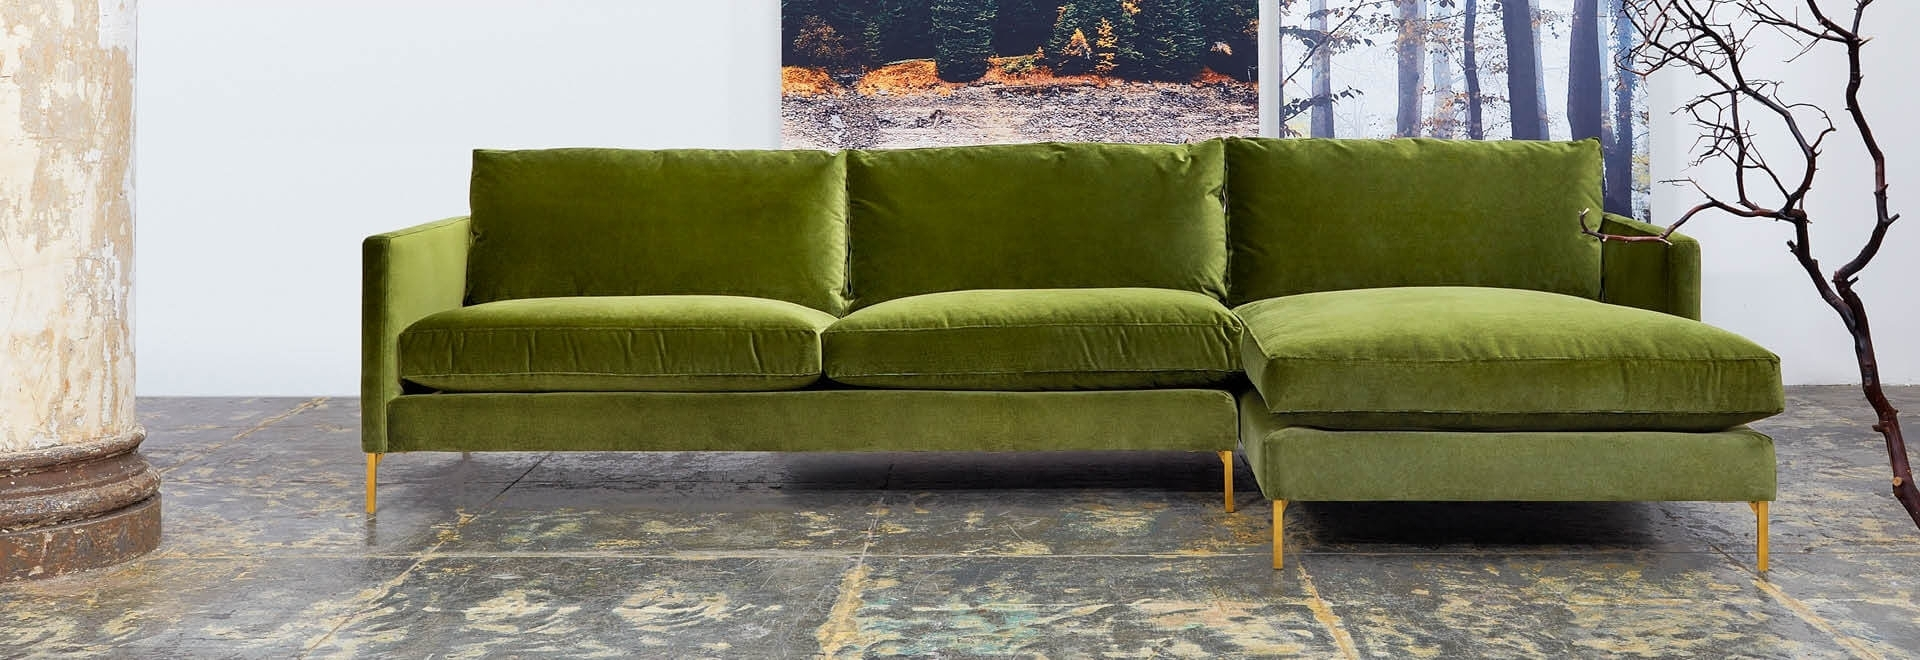 Modern Sectional Sofas For Nyc Apartments At Abc Home With Nyc Sectional Sofas (View 3 of 10)